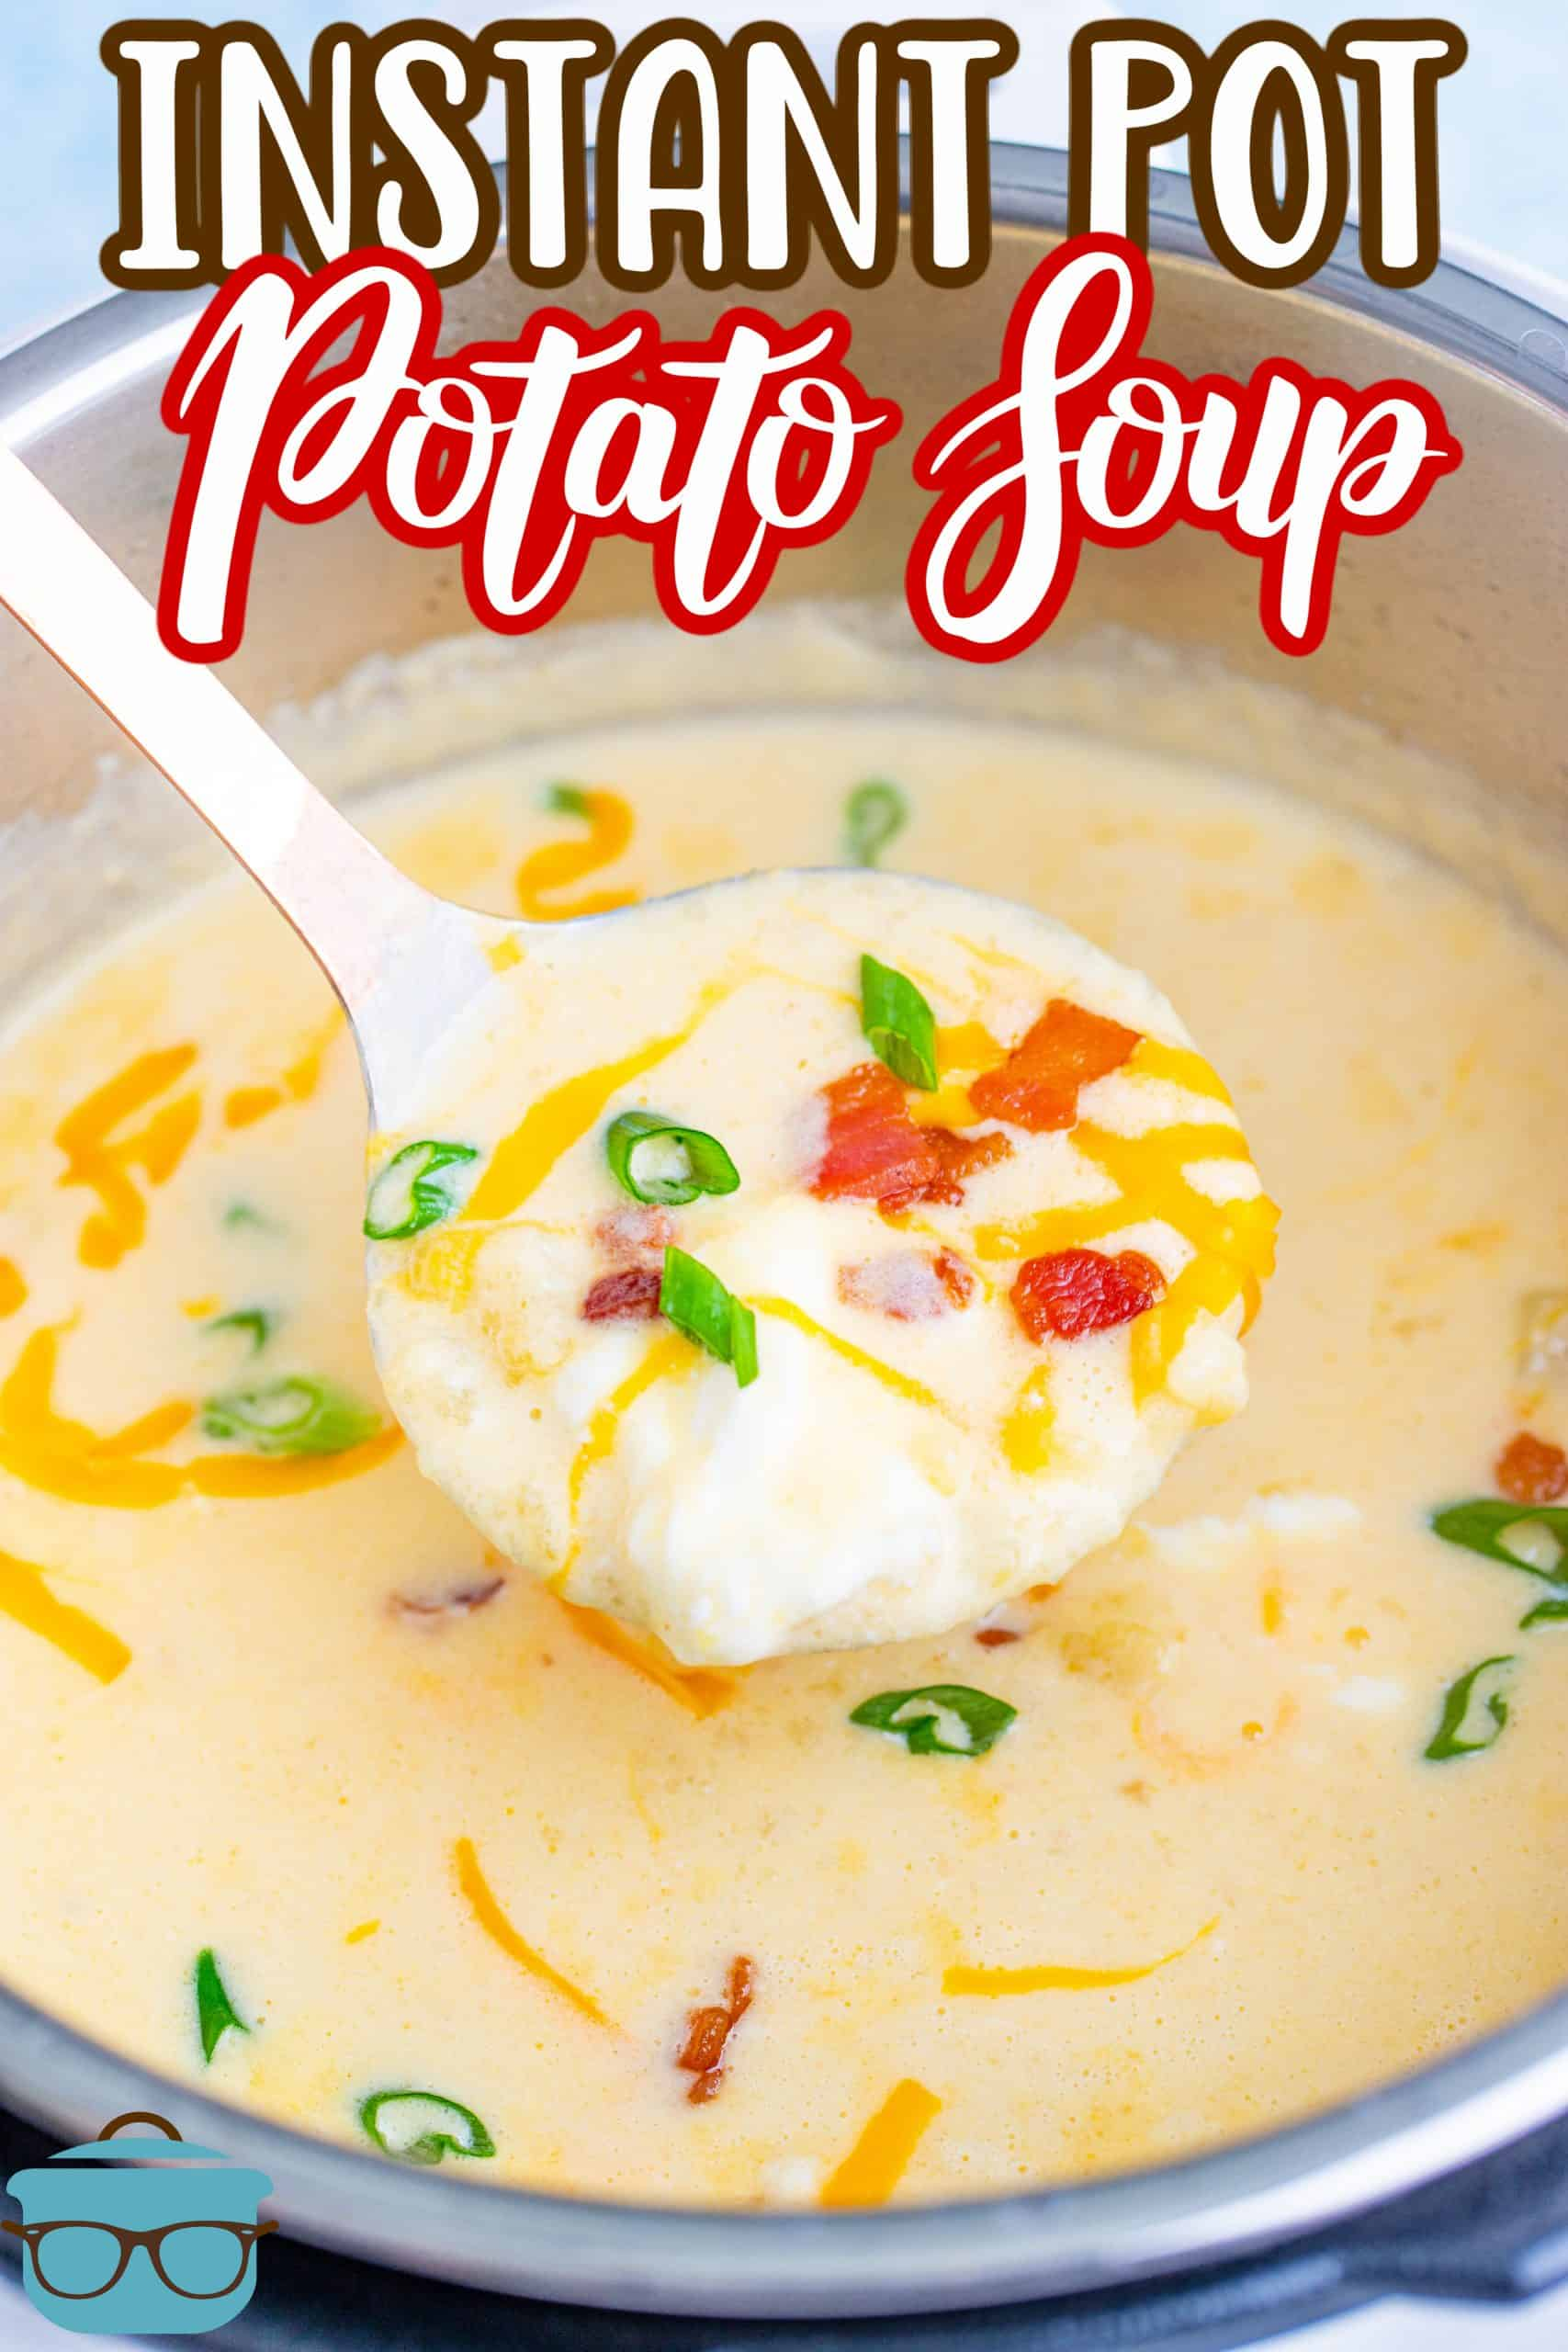 Warm, comforting and hearty, this Instant Pot Potato Soup is an easy family favorite recipethat's made in minutes. Topped with bacon, cheese and green onions!